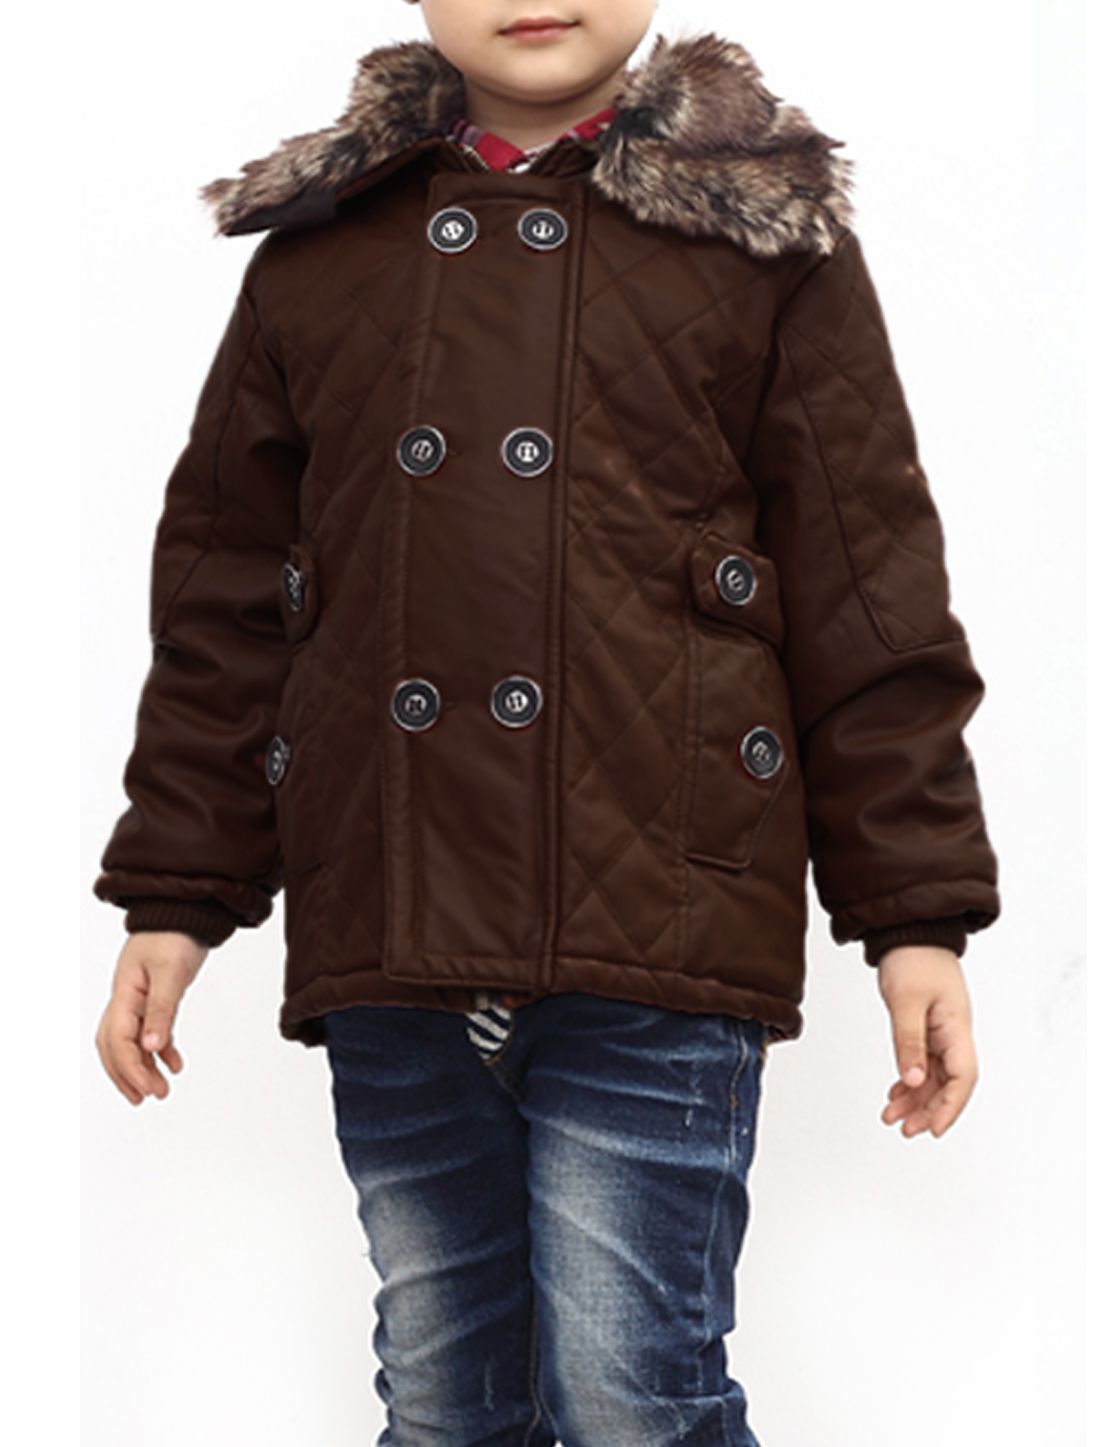 Zip Closure Small Pockets Design Jacket for Boys Coffee 10